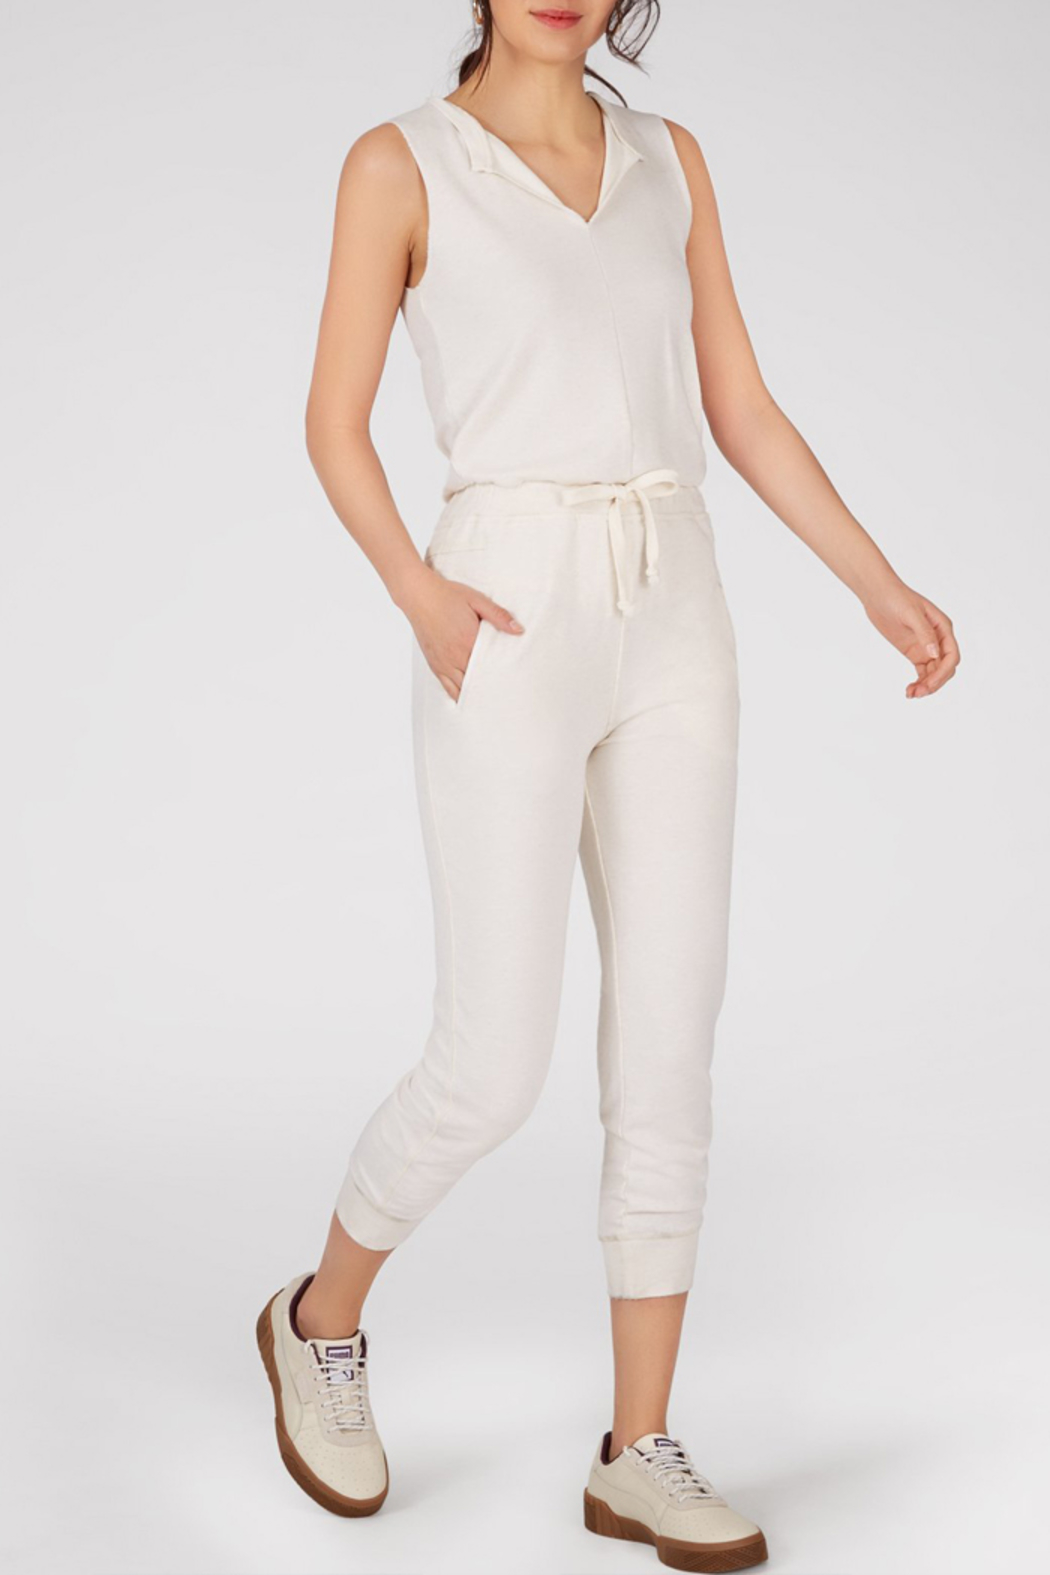 525 America 525 AMERICA SLEEVELESS JUMPSUIT - Front Cropped Image